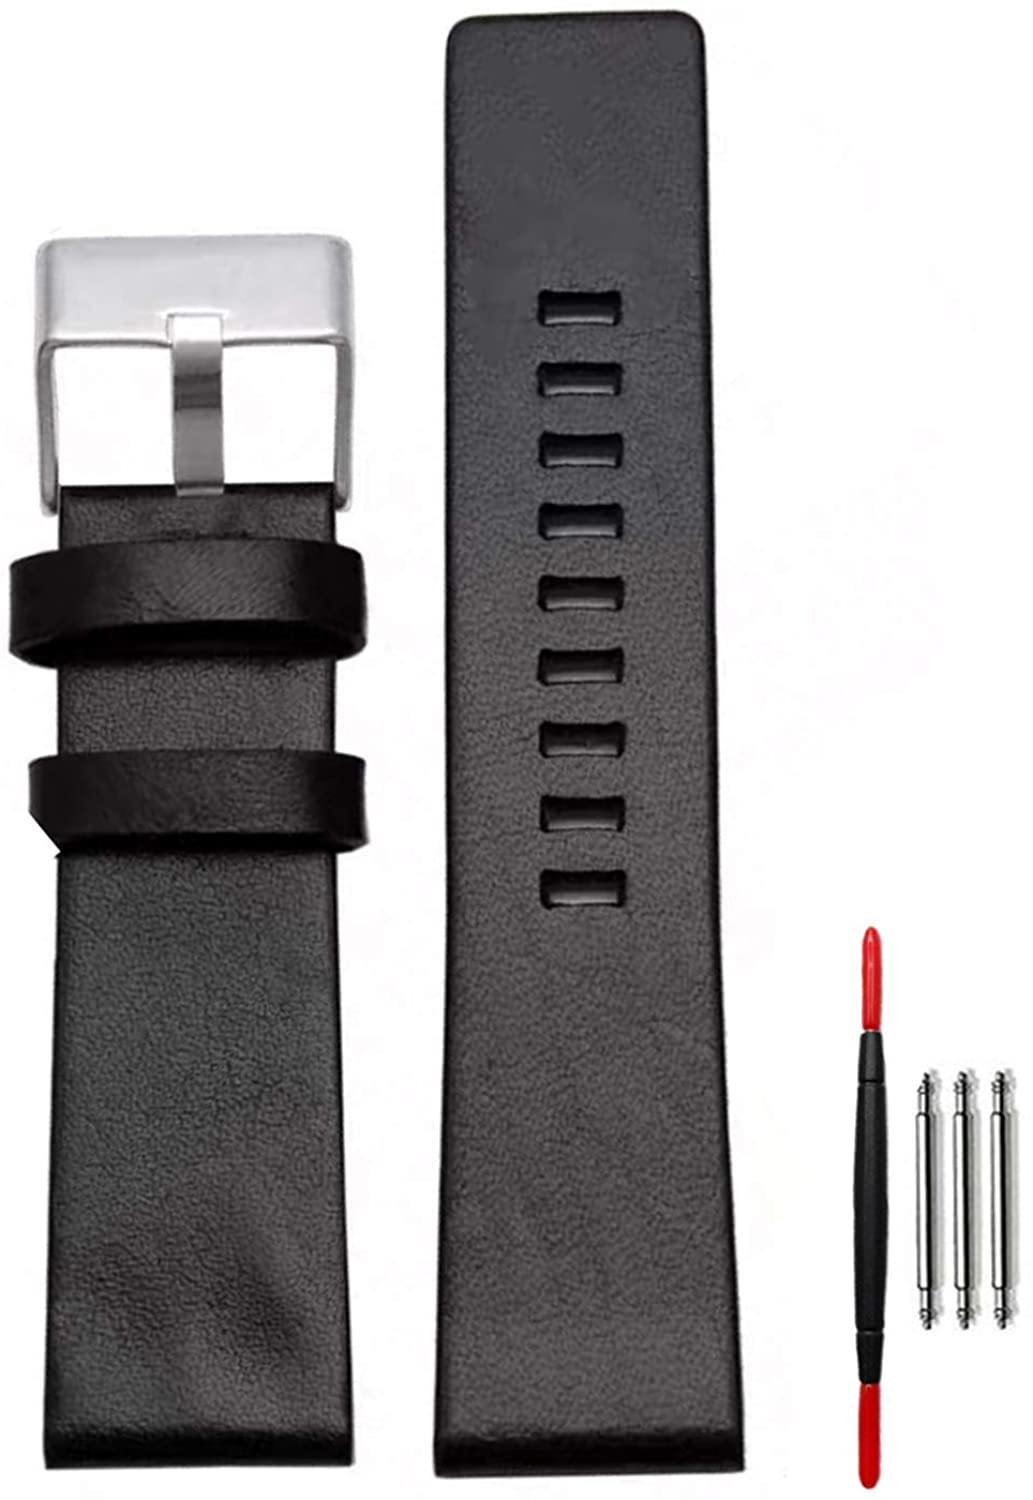 Replacement Watch Band,Calfskin Leather Diesel Watch Bands for Men Silver Rivet Suitable for Men's Diesel Watches